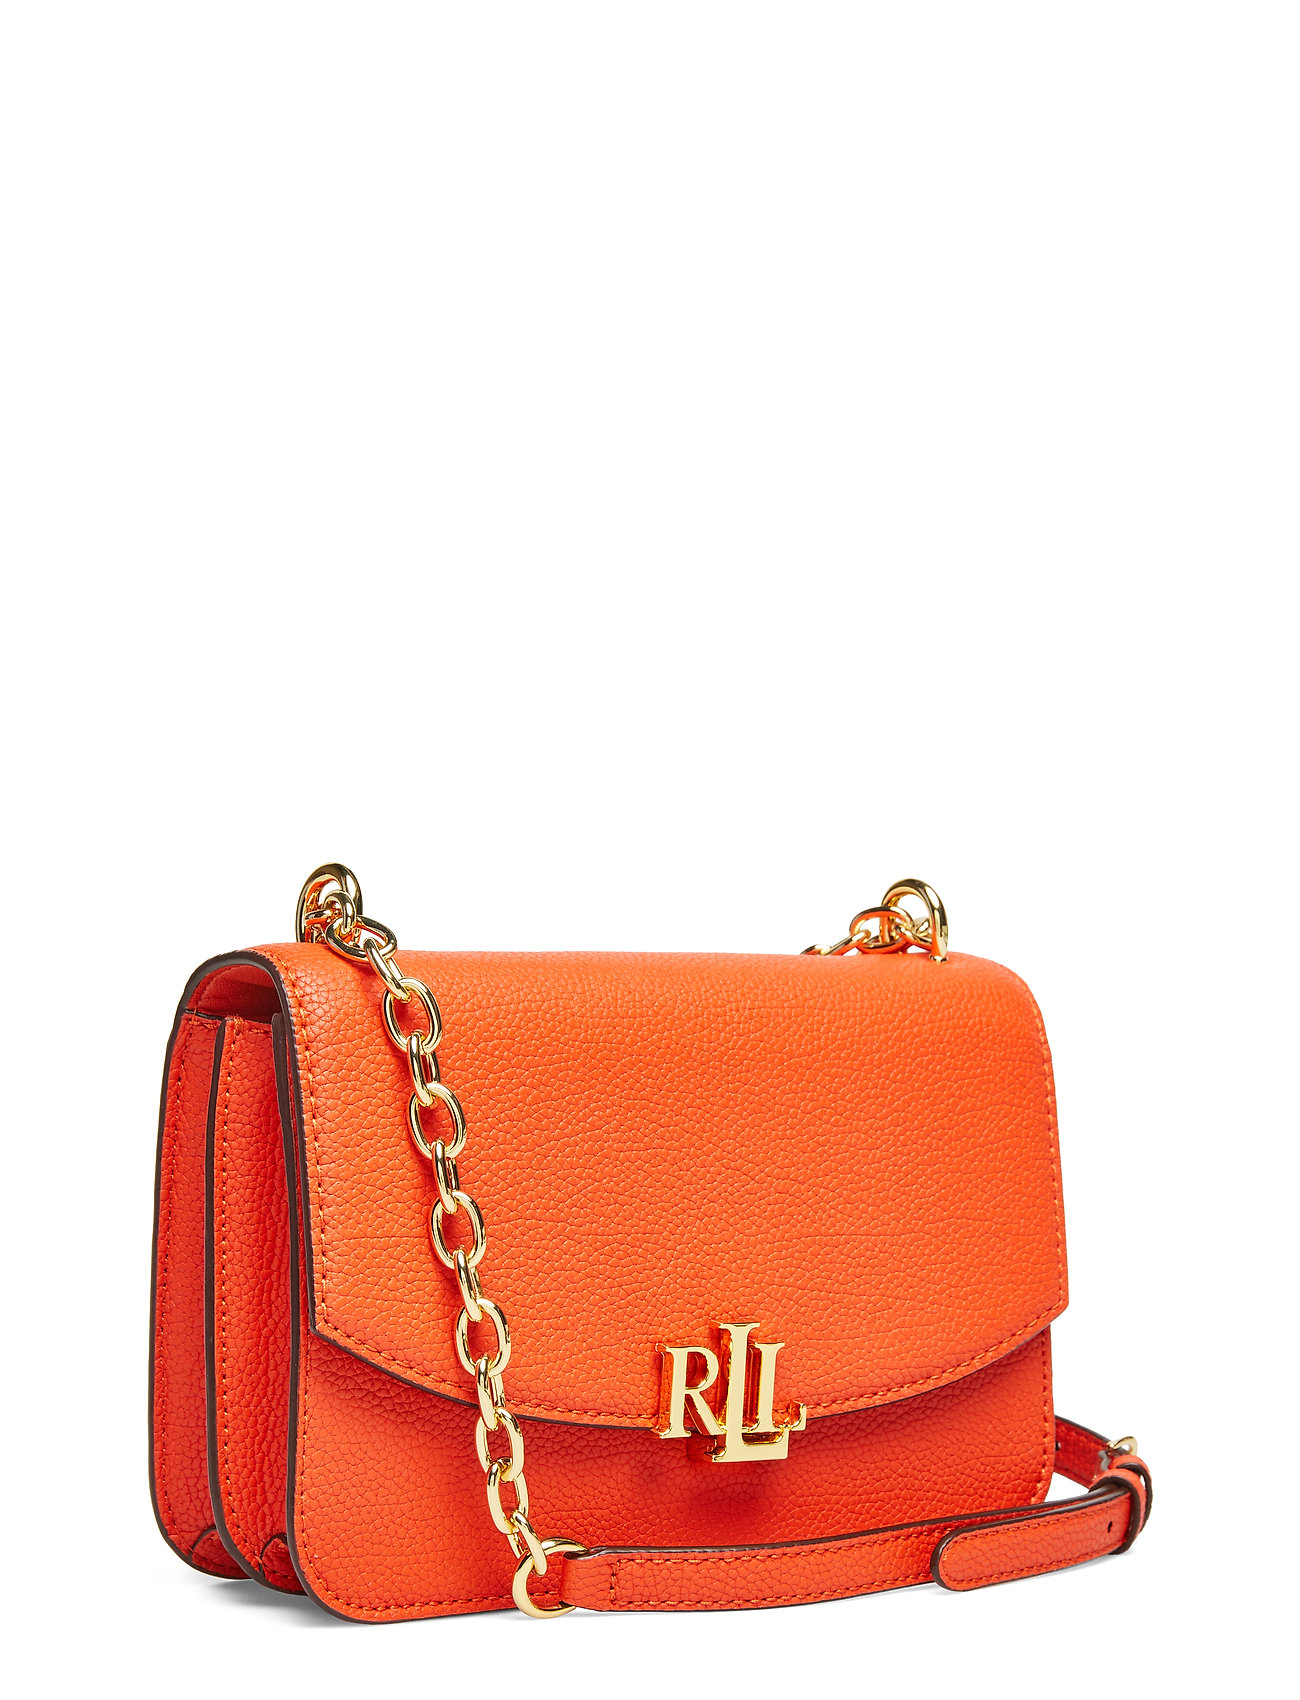 Ralph Leather Medium Crossbody Medium BagpumpkinLauren Crossbody Leather thrxQCsd